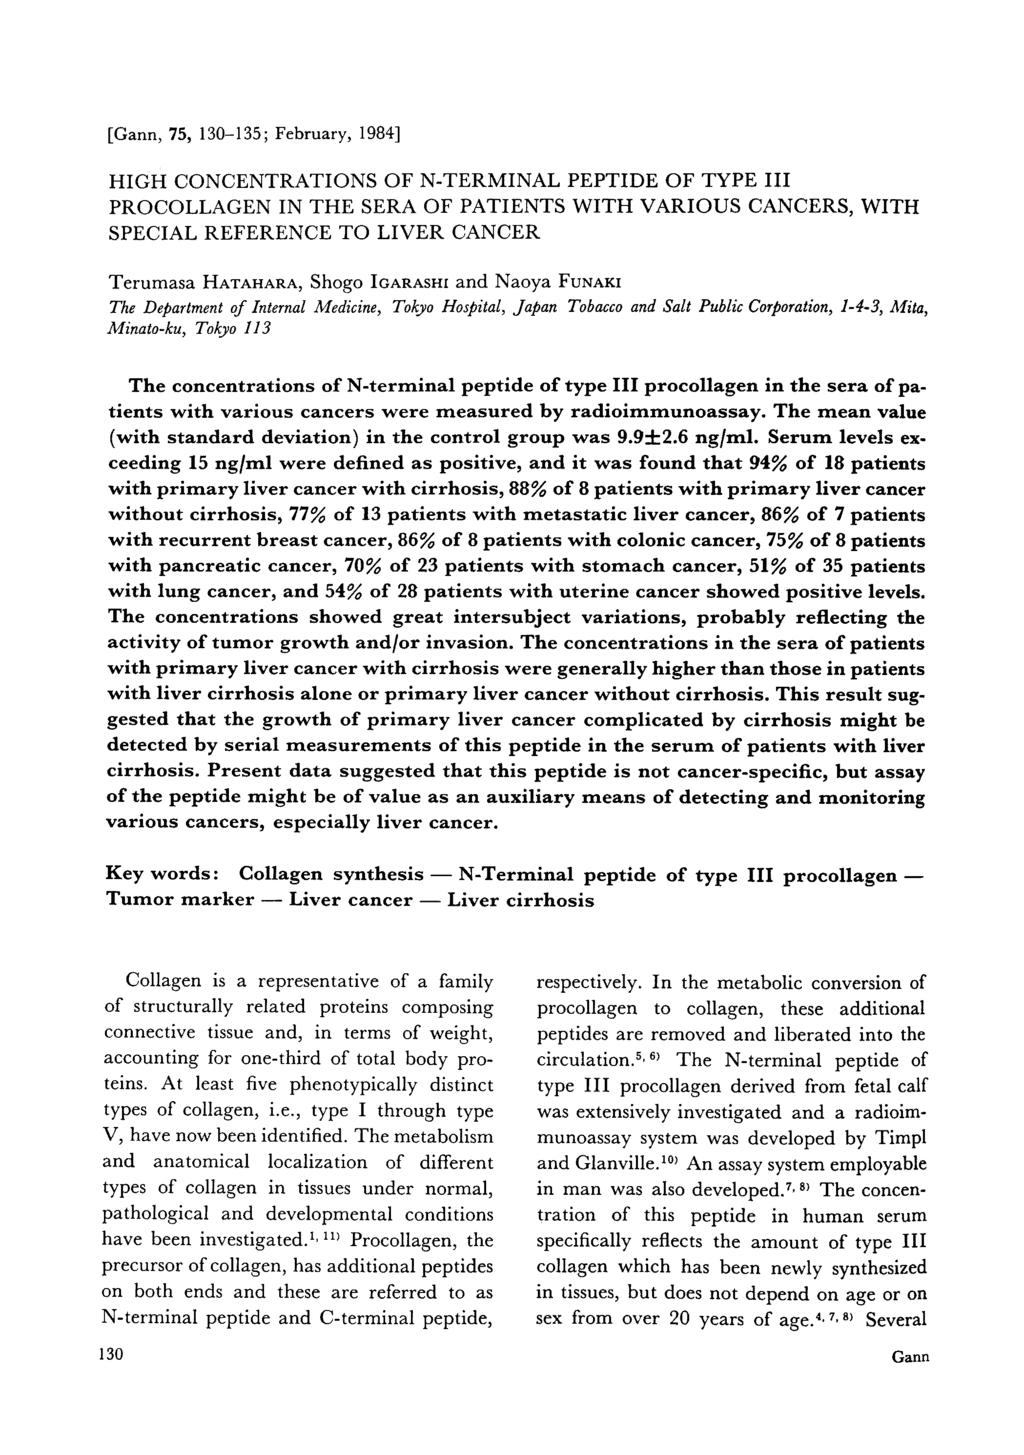 [Gann, 75, 130-135; February, 1984] HIGH CONCENTRATIONS OF N-TERMINAL PEPTIDE OF TYPE III PROCOLLAGEN IN THE SERA OF PATIENTS WITH VARIOUS CANCERS, WITH SPECIAL REFERENCE TO LIVER CANCER Terumasa